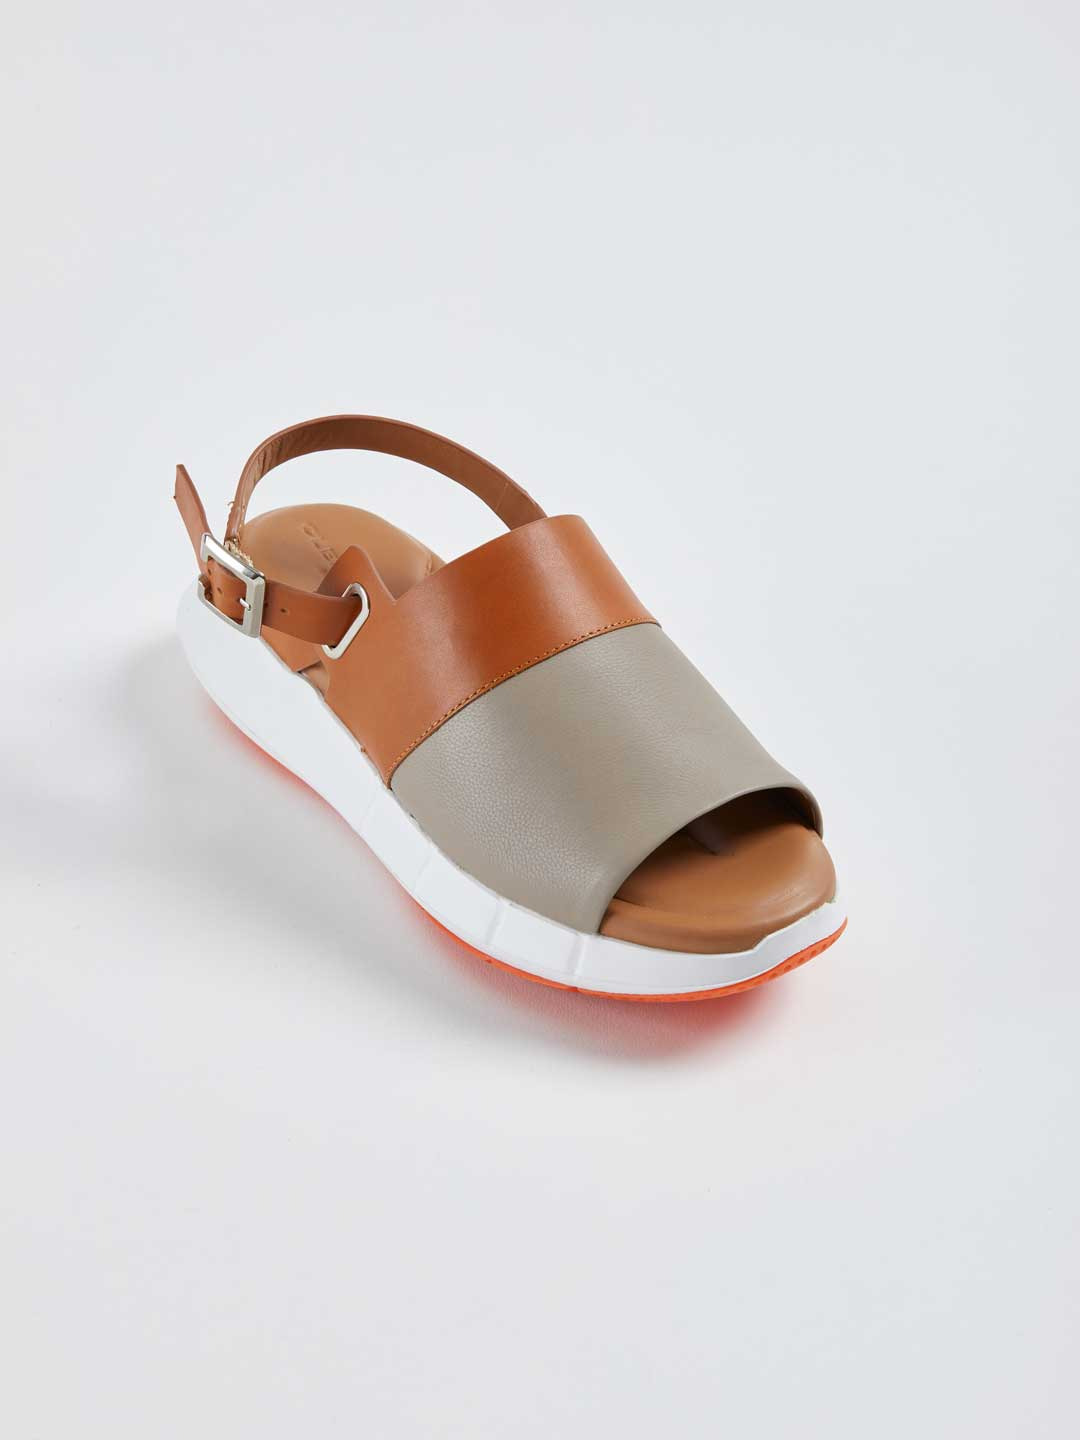 SOLIN Thick Sole Back Strap Sandals - Brown